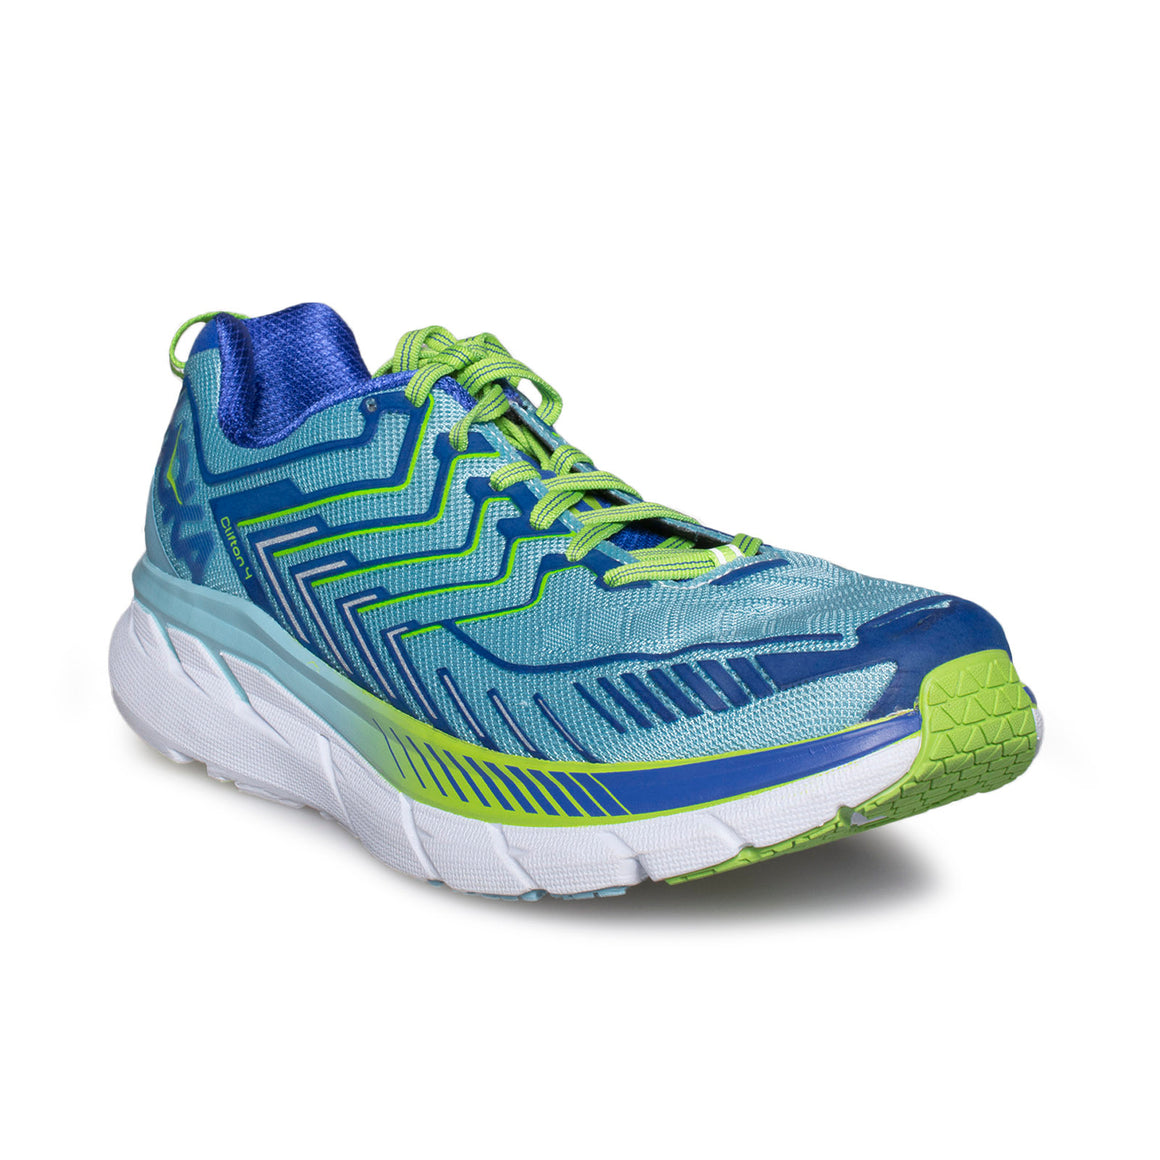 Hoka Clifton 4 Sky Blue / Surf The Web Running Shoes - Women's